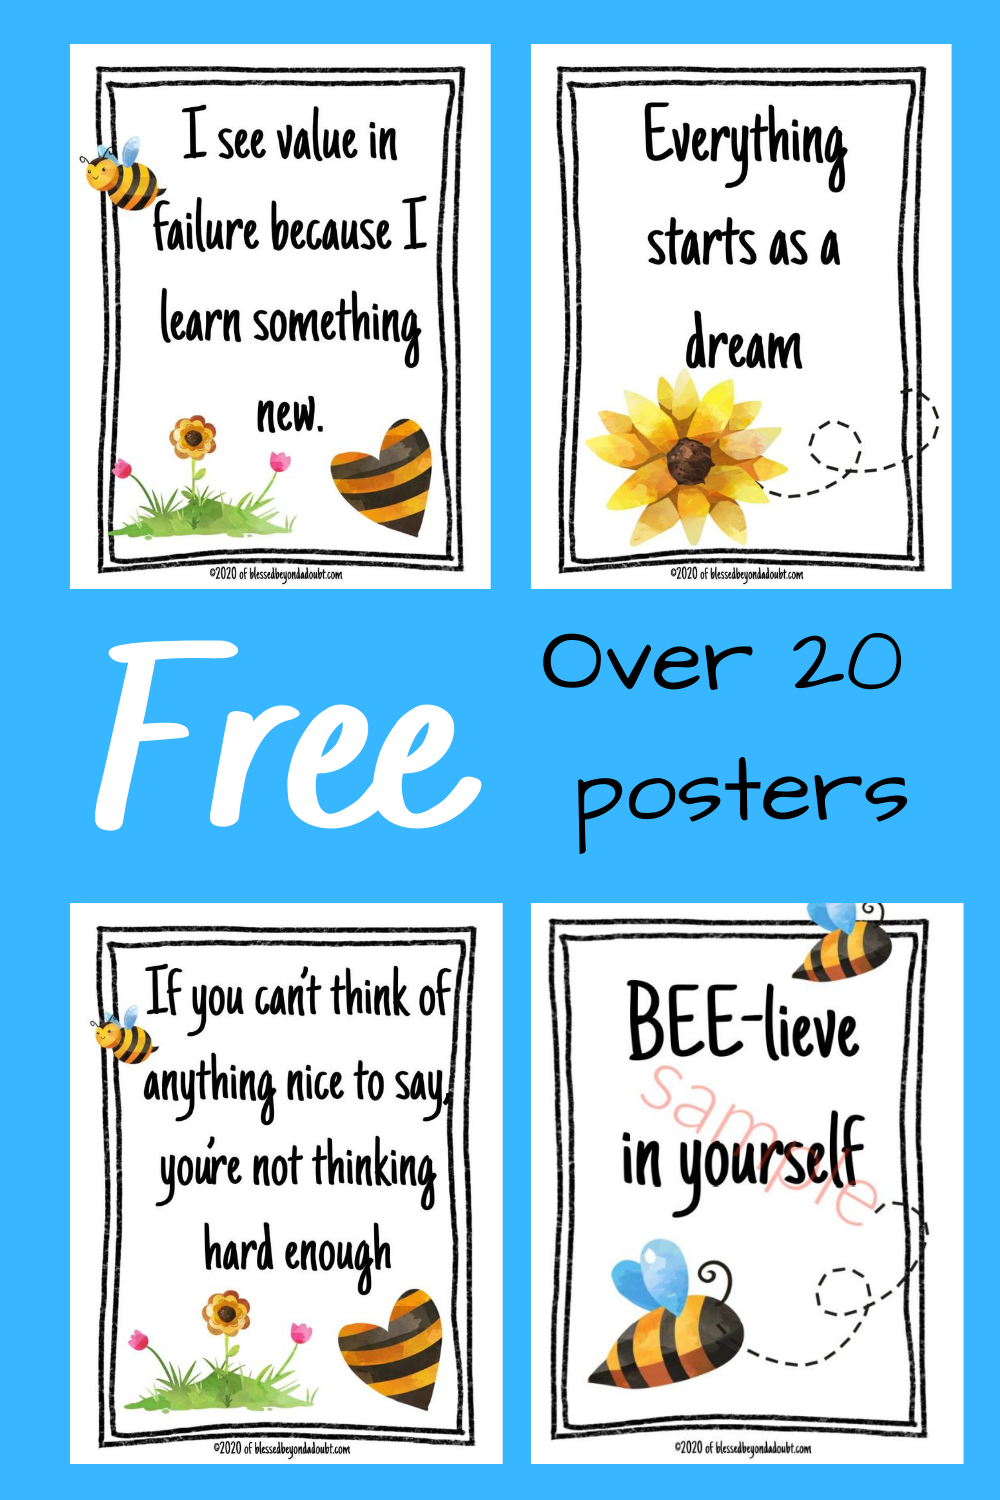 Here are 2 sets of FREE Growth Mindset Posters for classroom. There are over 20 different encouraging quotes. Pick and choose which ones work in your classroom. #growthmindset #growthmindsetquotes #growthmindsetactivities #growthmindsetbulletinboard #growthmindsetbulletinboardfree #growthmindsetquotes #growthmindsetquotesforkids #growthmindsetquotesforkidsposter #growthmindsetbulletinboard